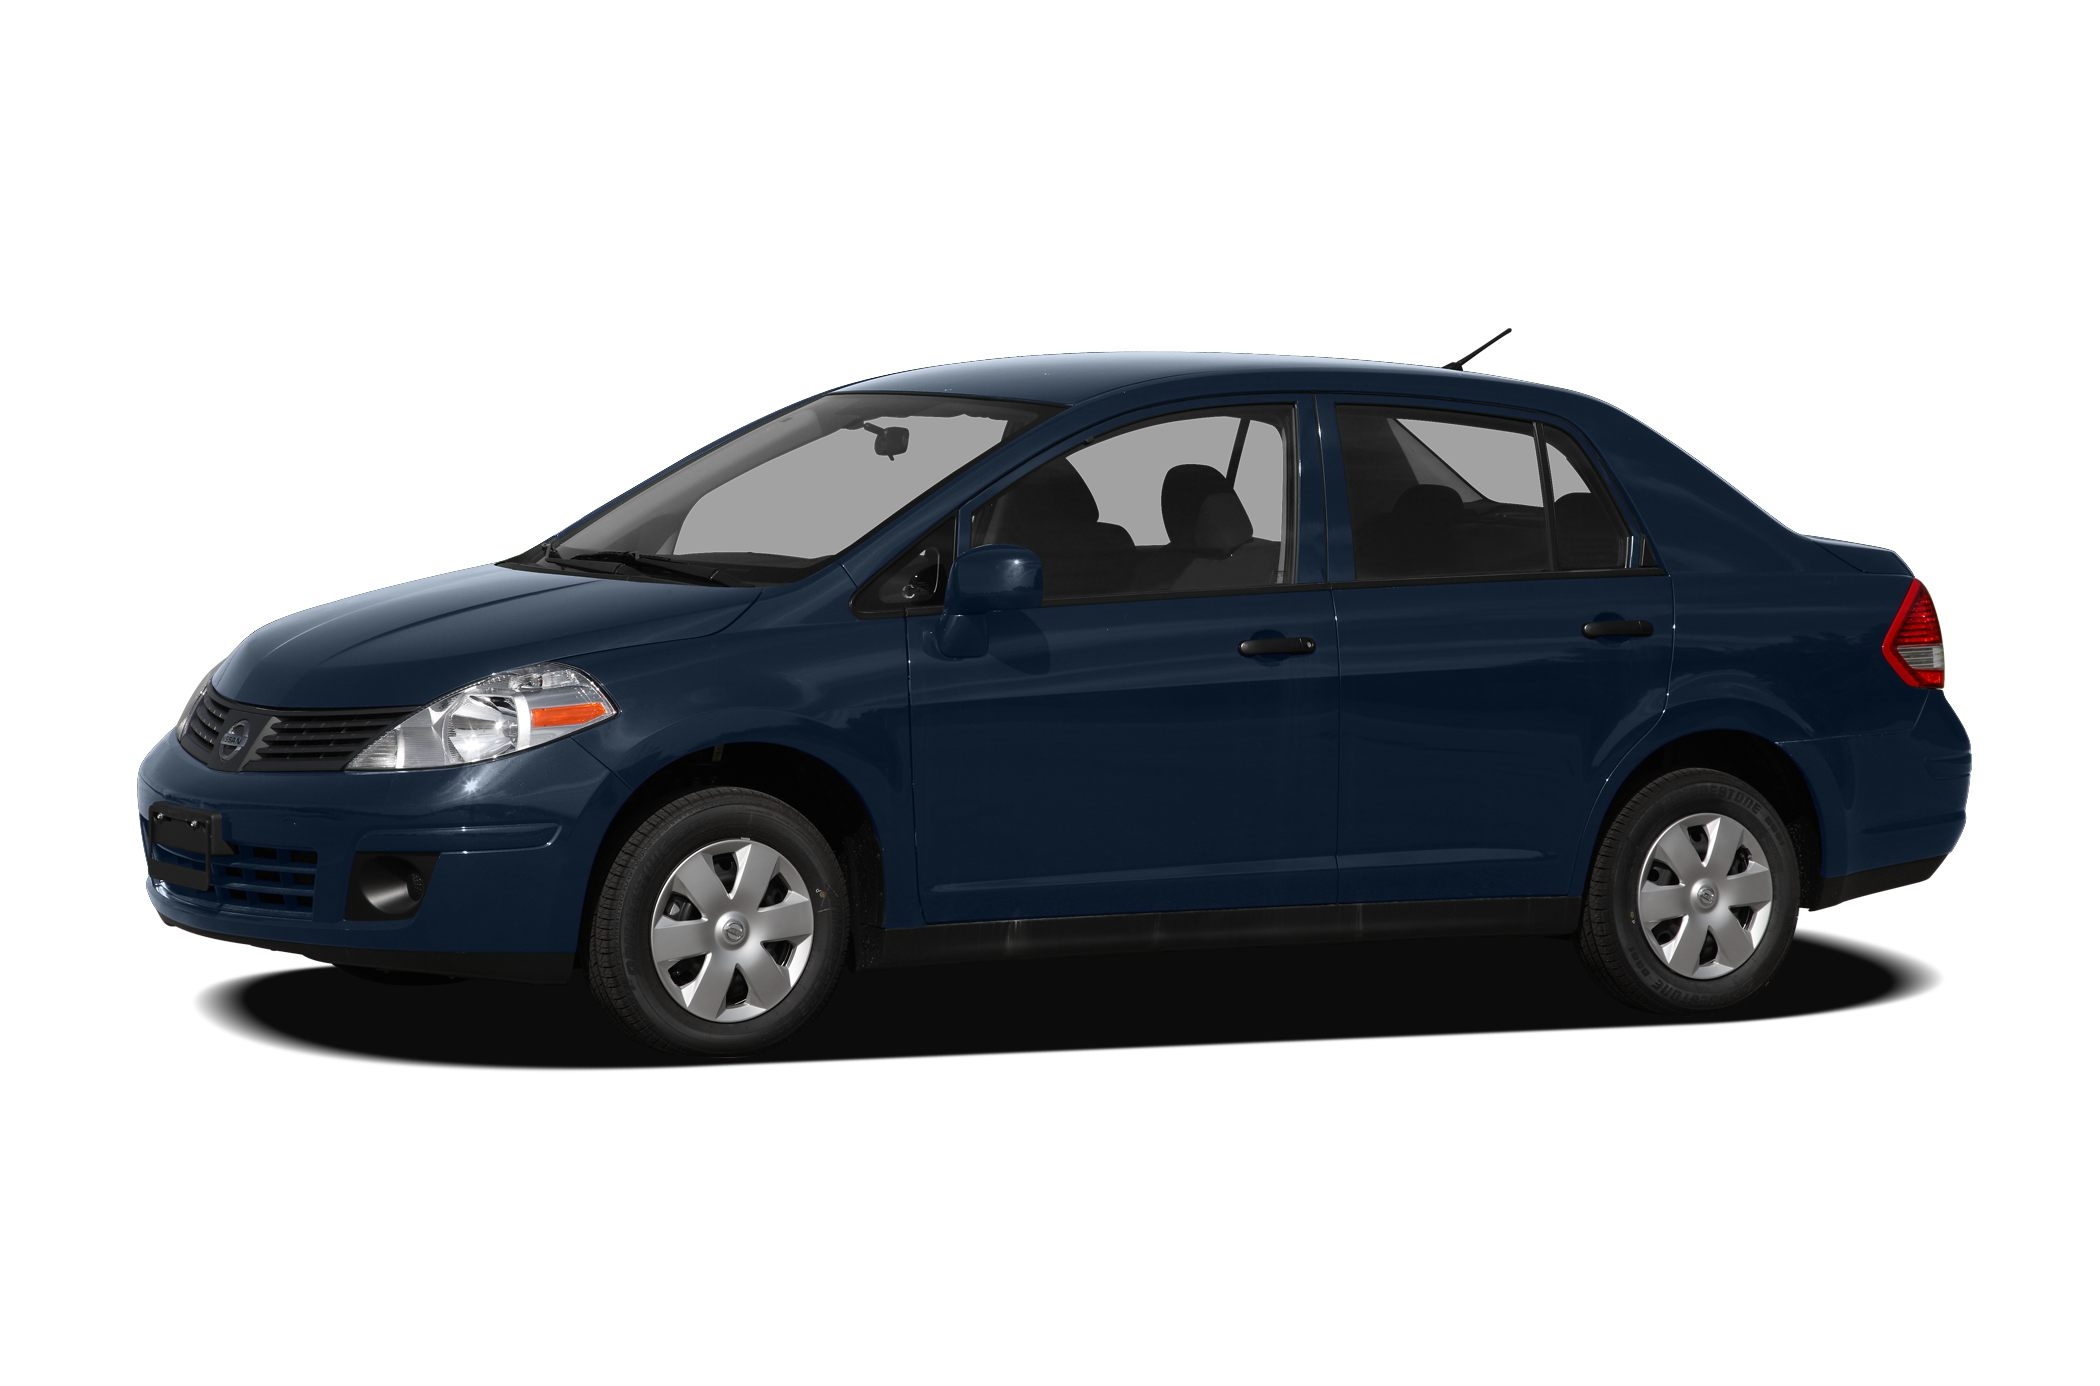 2011 Nissan Versa 1.6 Sedan for sale in Chico for $9,500 with 58,079 miles